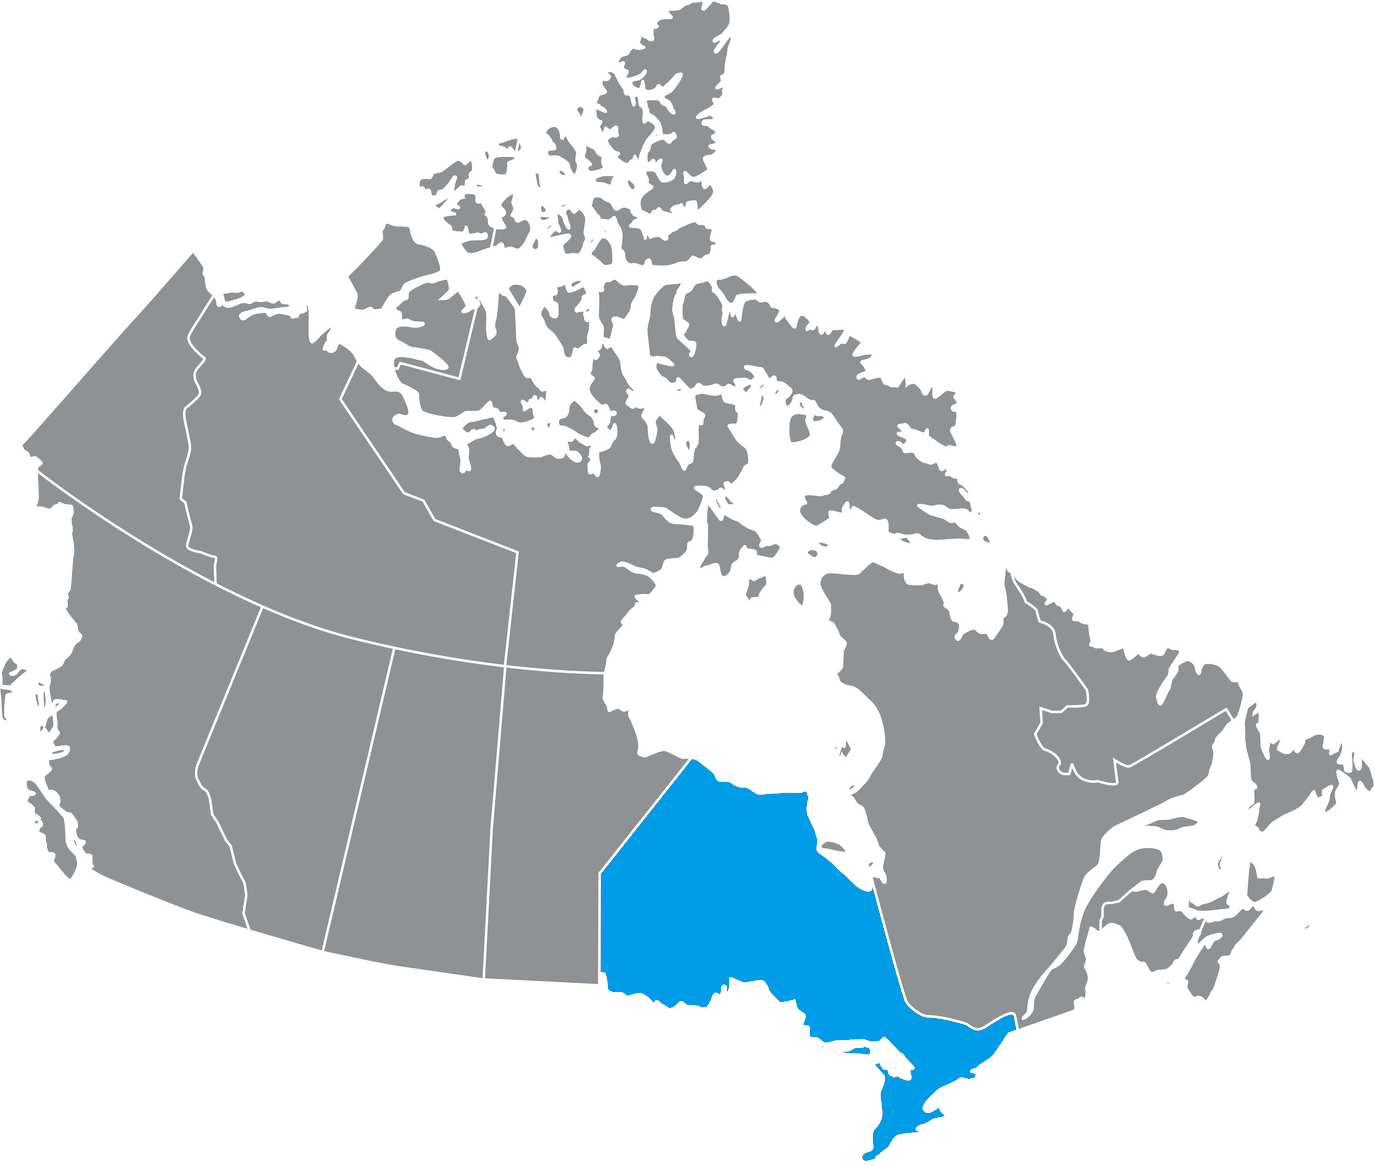 an overview of the canadian province of saskatchewan